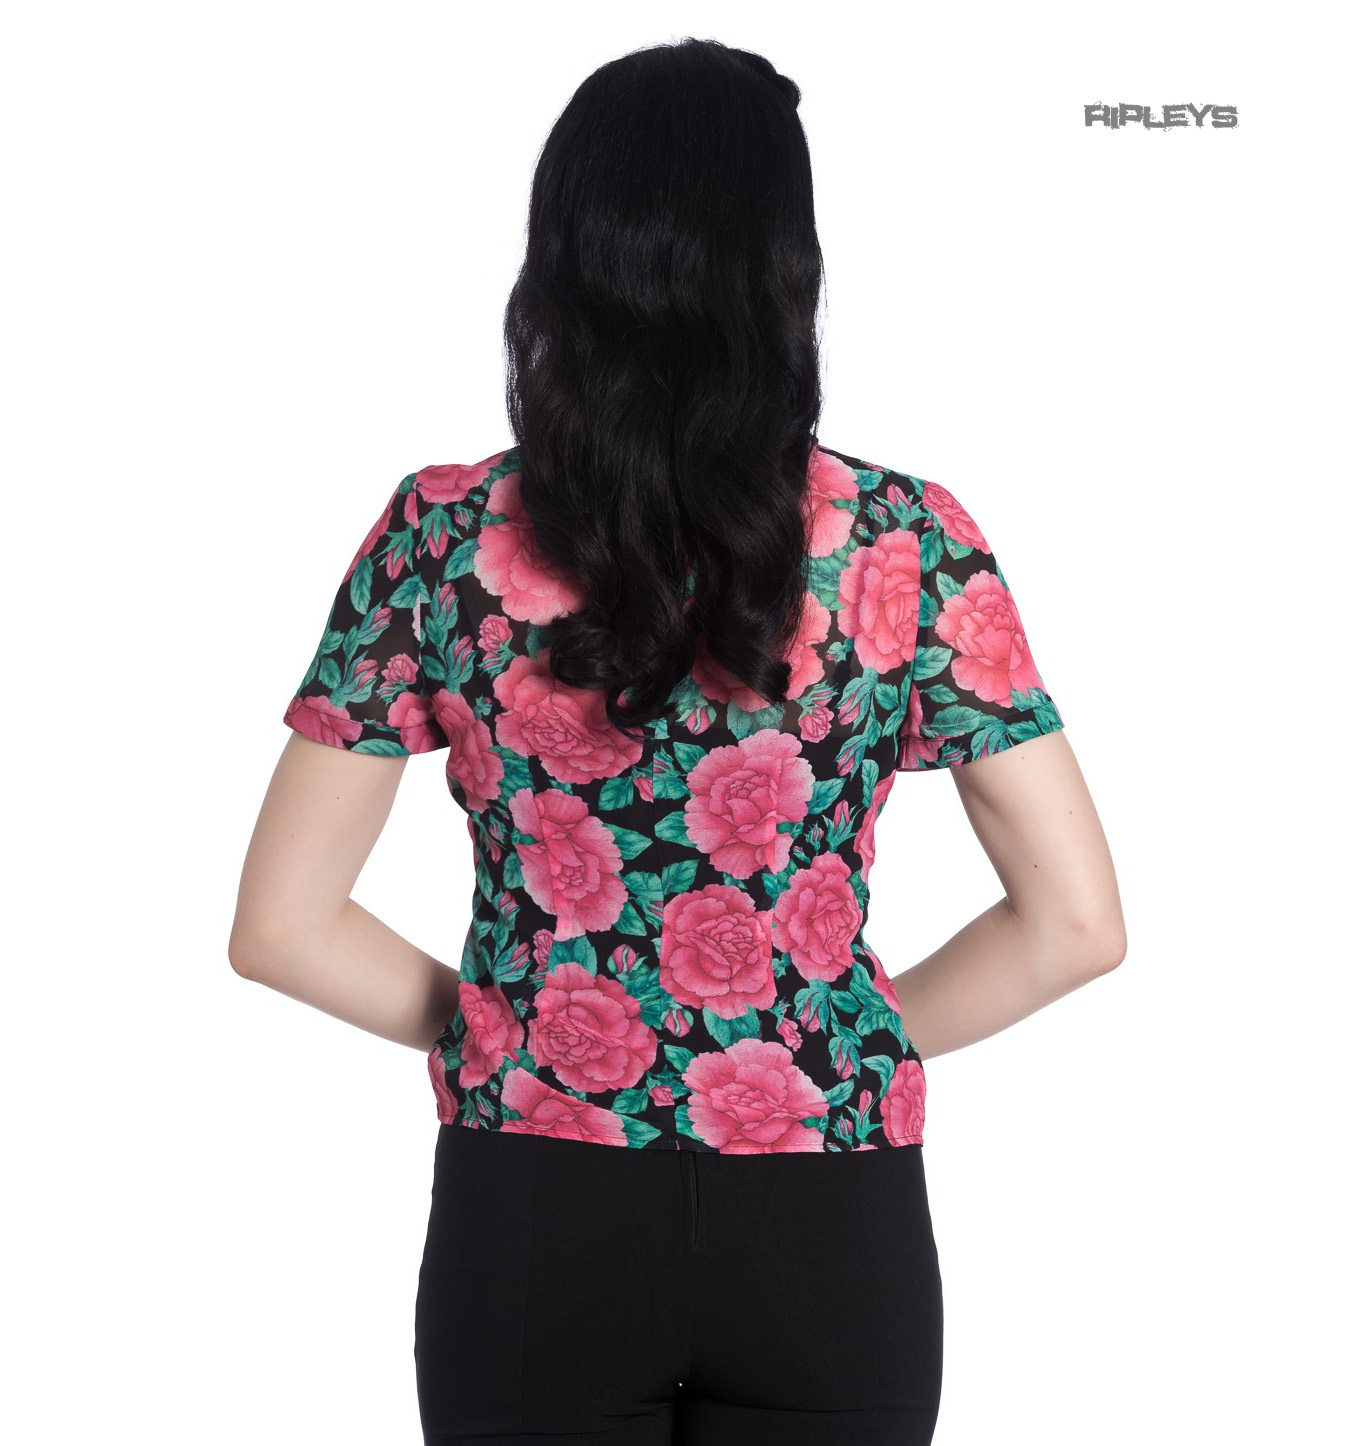 Hell-Bunny-Shirt-Top-Flowers-Roses-EDEN-ROSE-Black-Pink-Blouse-All-Sizes thumbnail 32